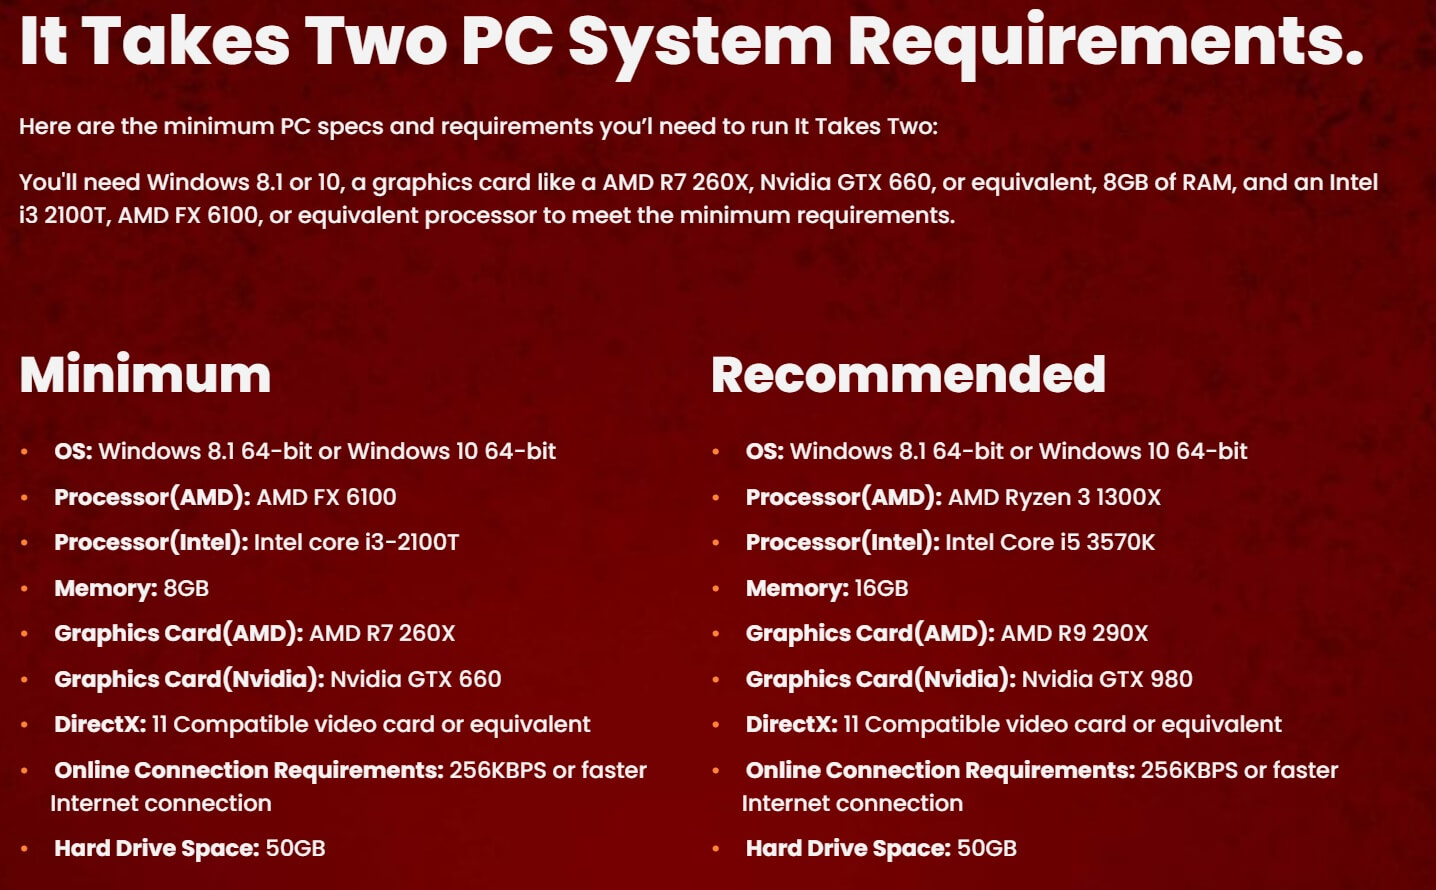 It Takes Two PC Requirements